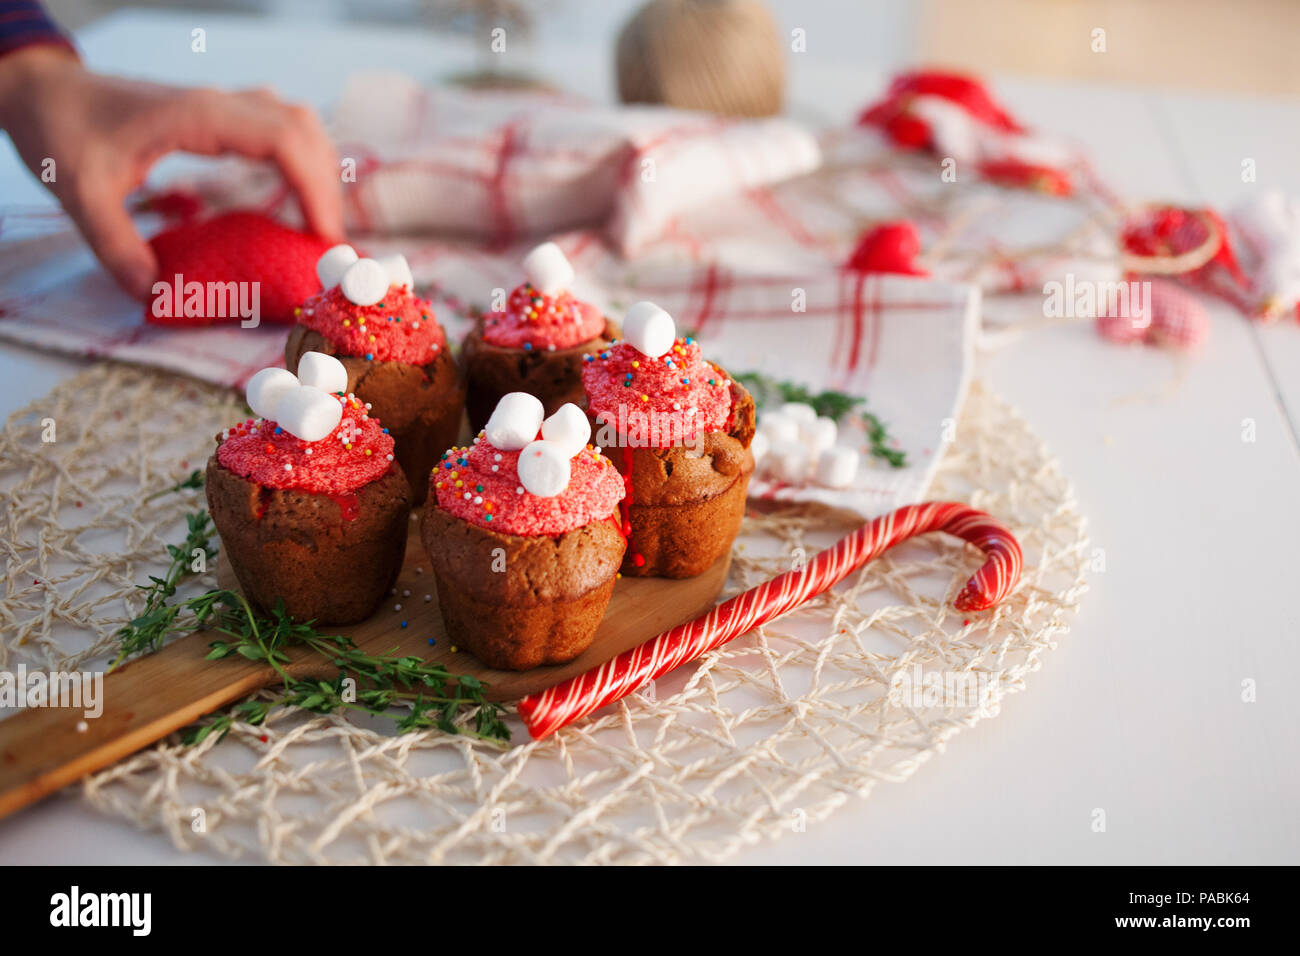 New Year celebration cupcakes, chocolate muffins on the table - Stock Image